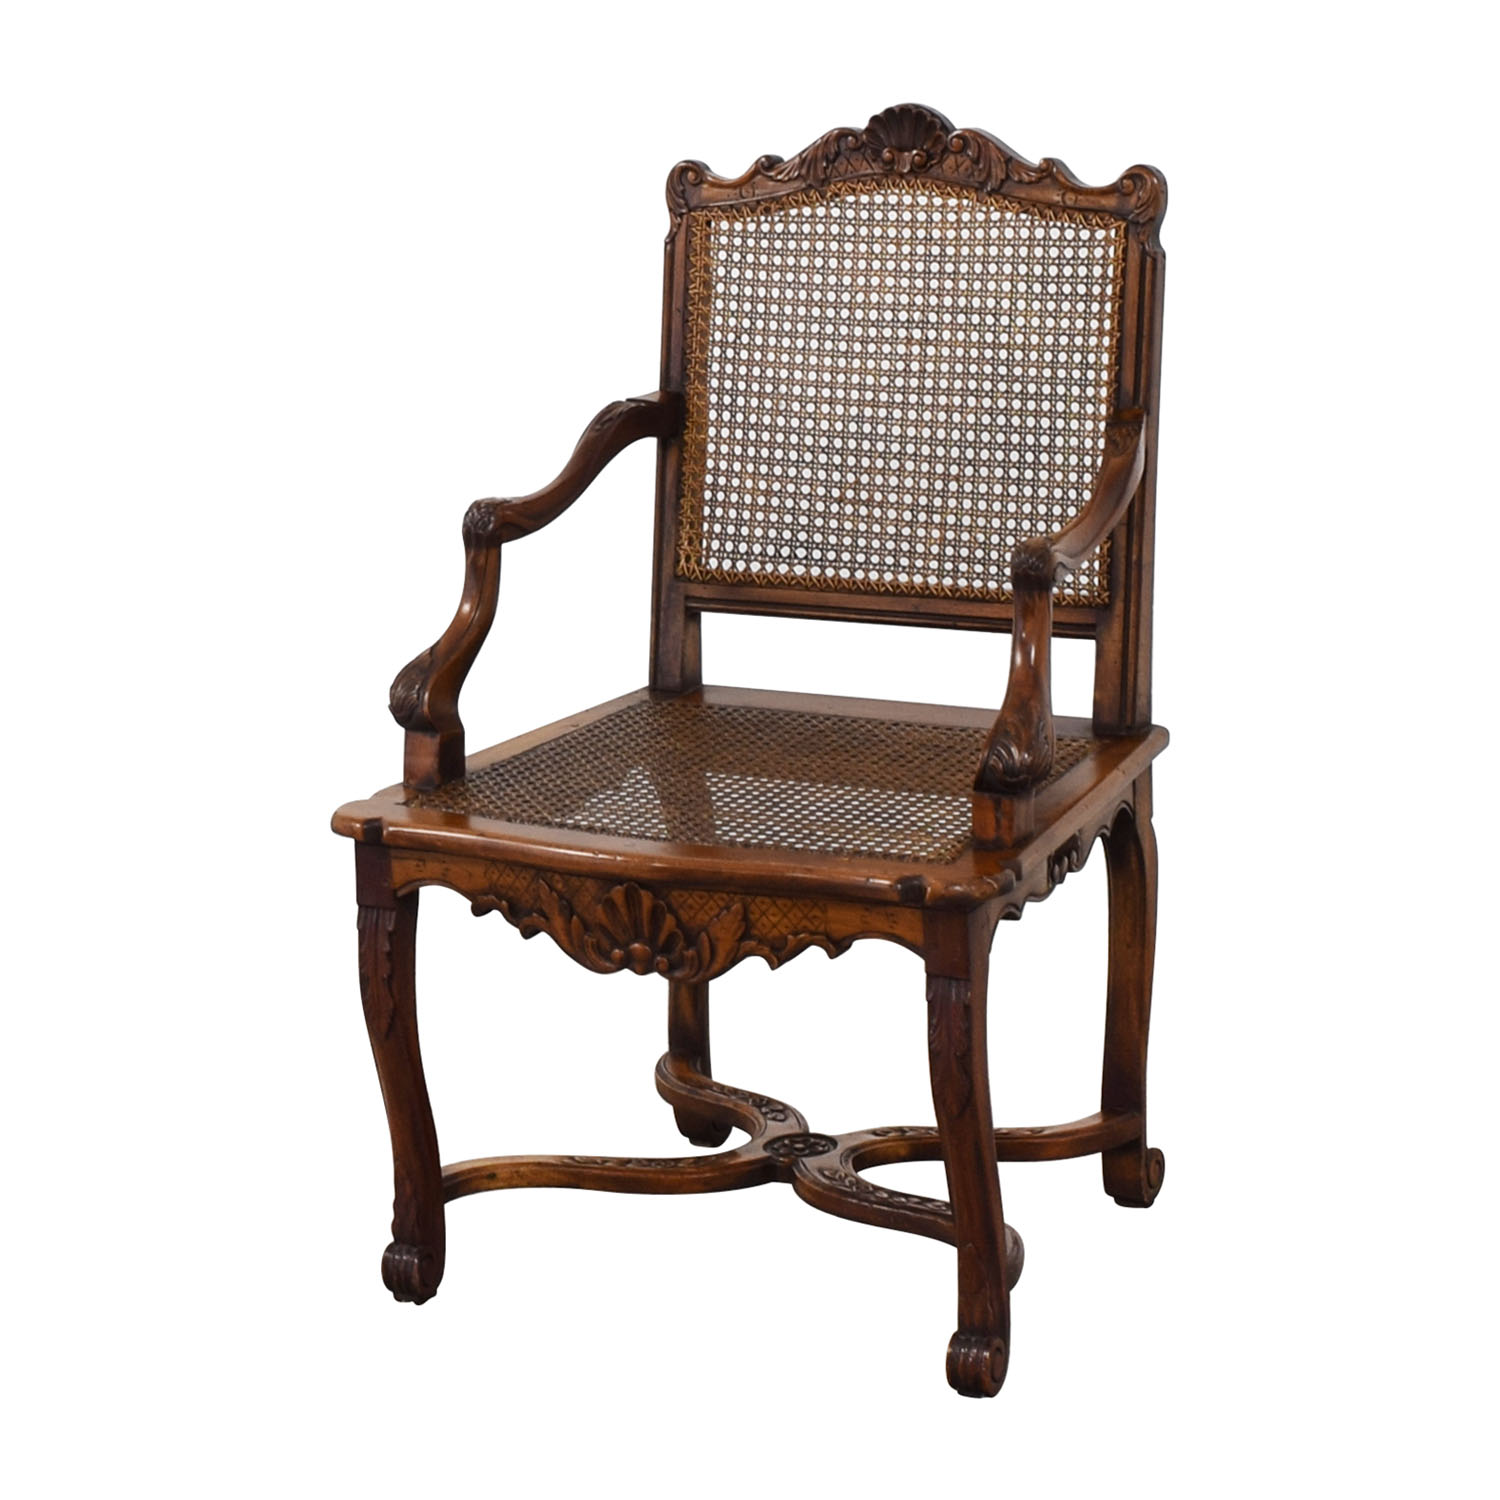 86% OFF - Decorative Carved Armchair / Chairs